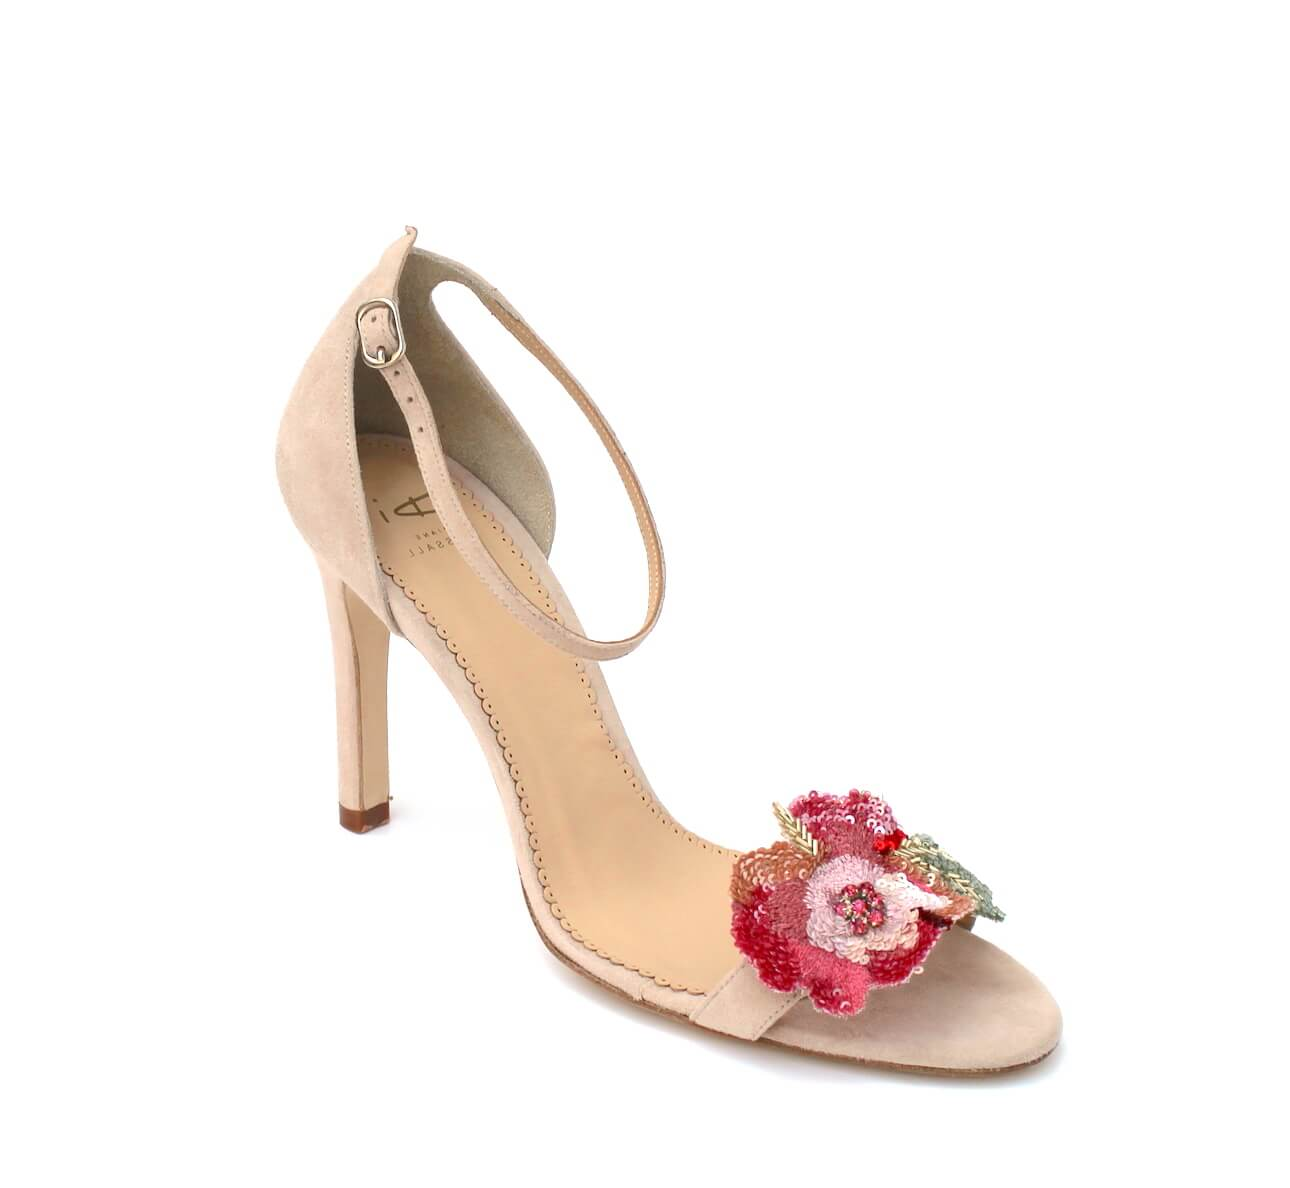 suede sandal with floral detail